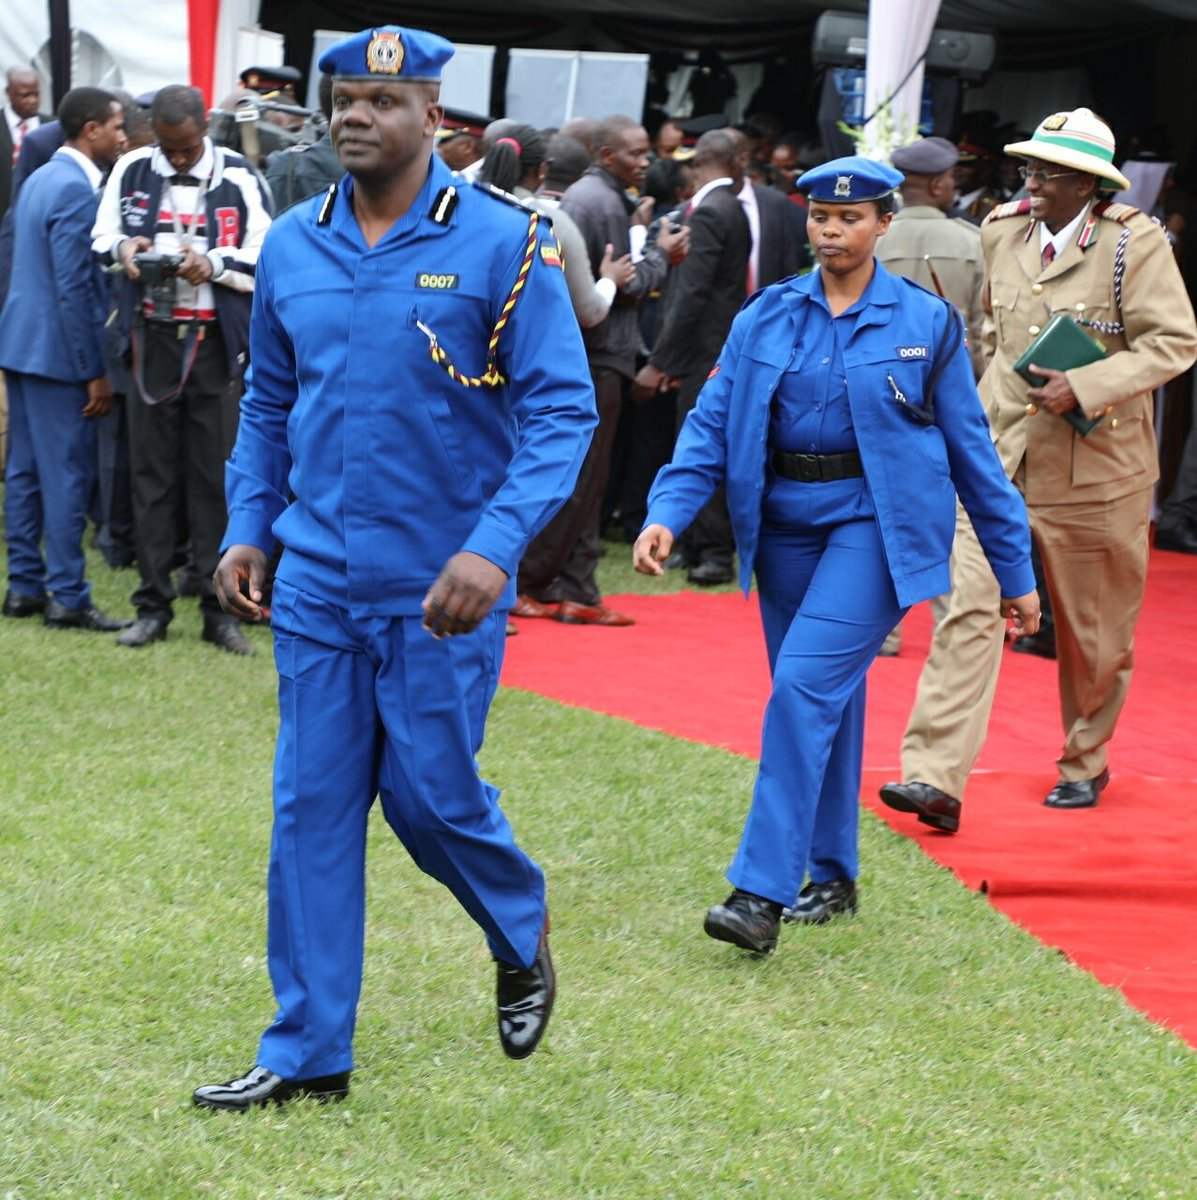 Kenya Police: New salary, Uniforms, Command Ranking Structure & Badges